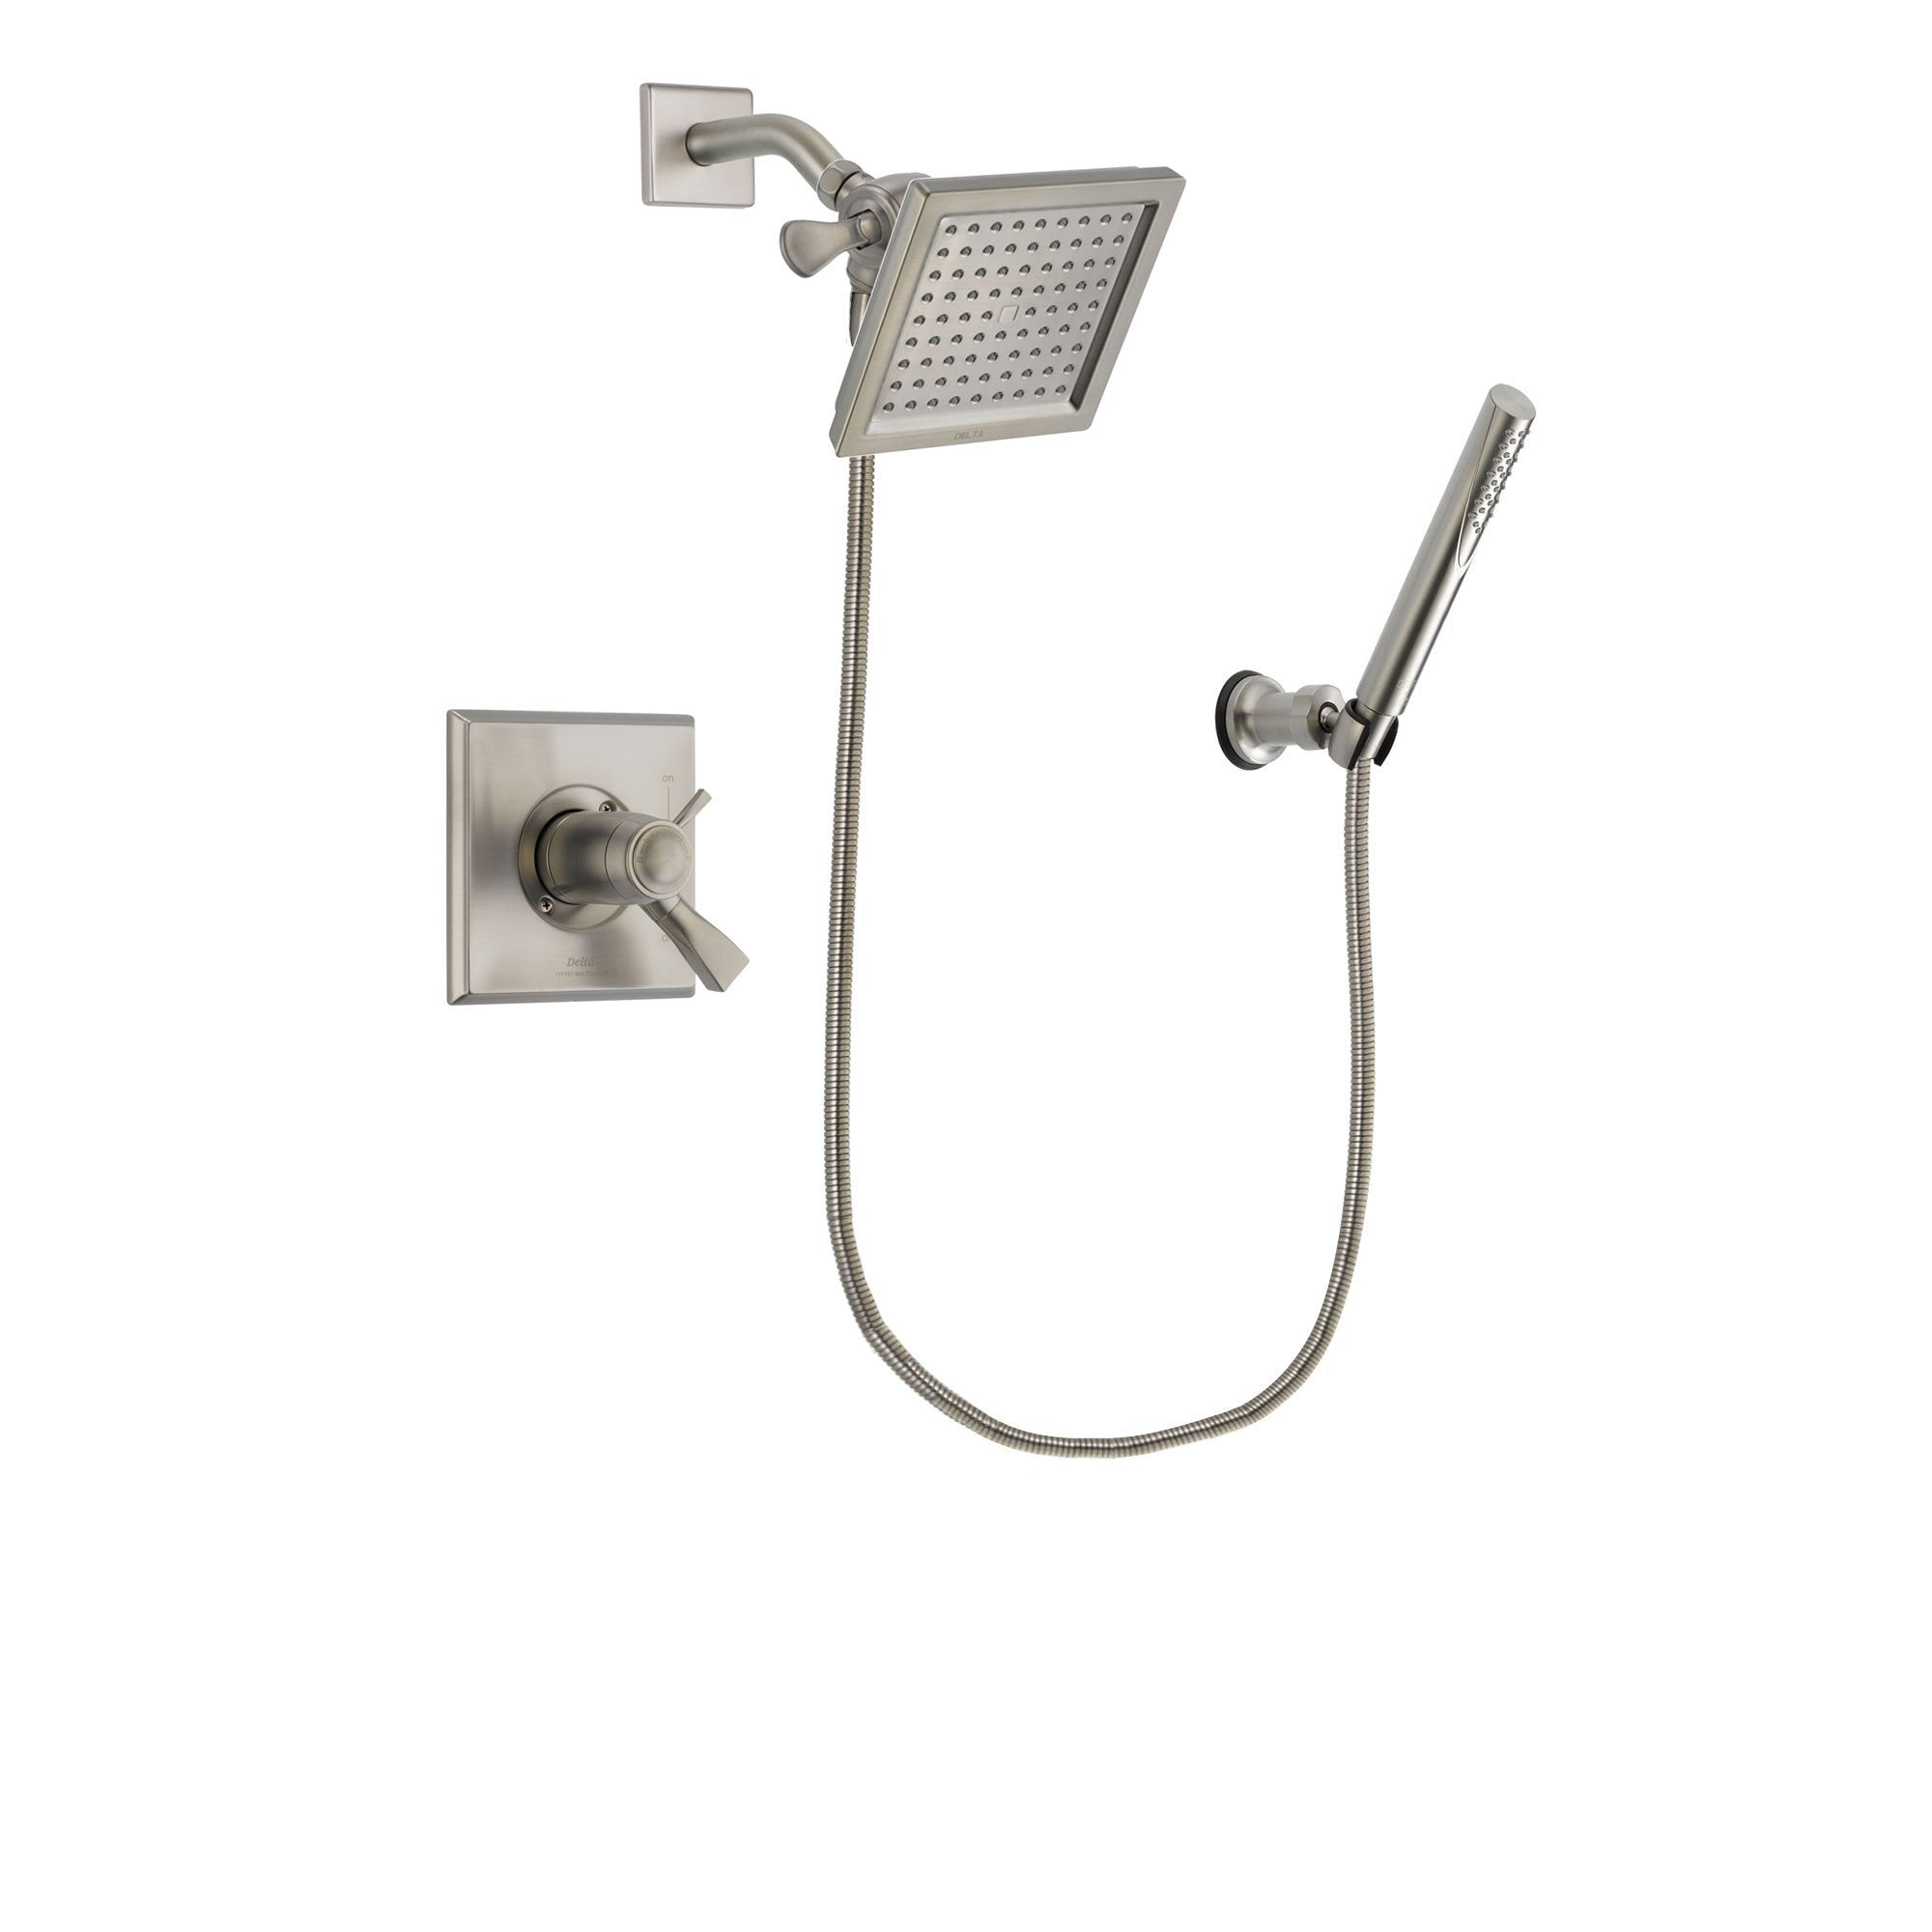 Delta Dryden Stainless Steel Finish Shower Faucet System w/ Hand Spray DSP2130V